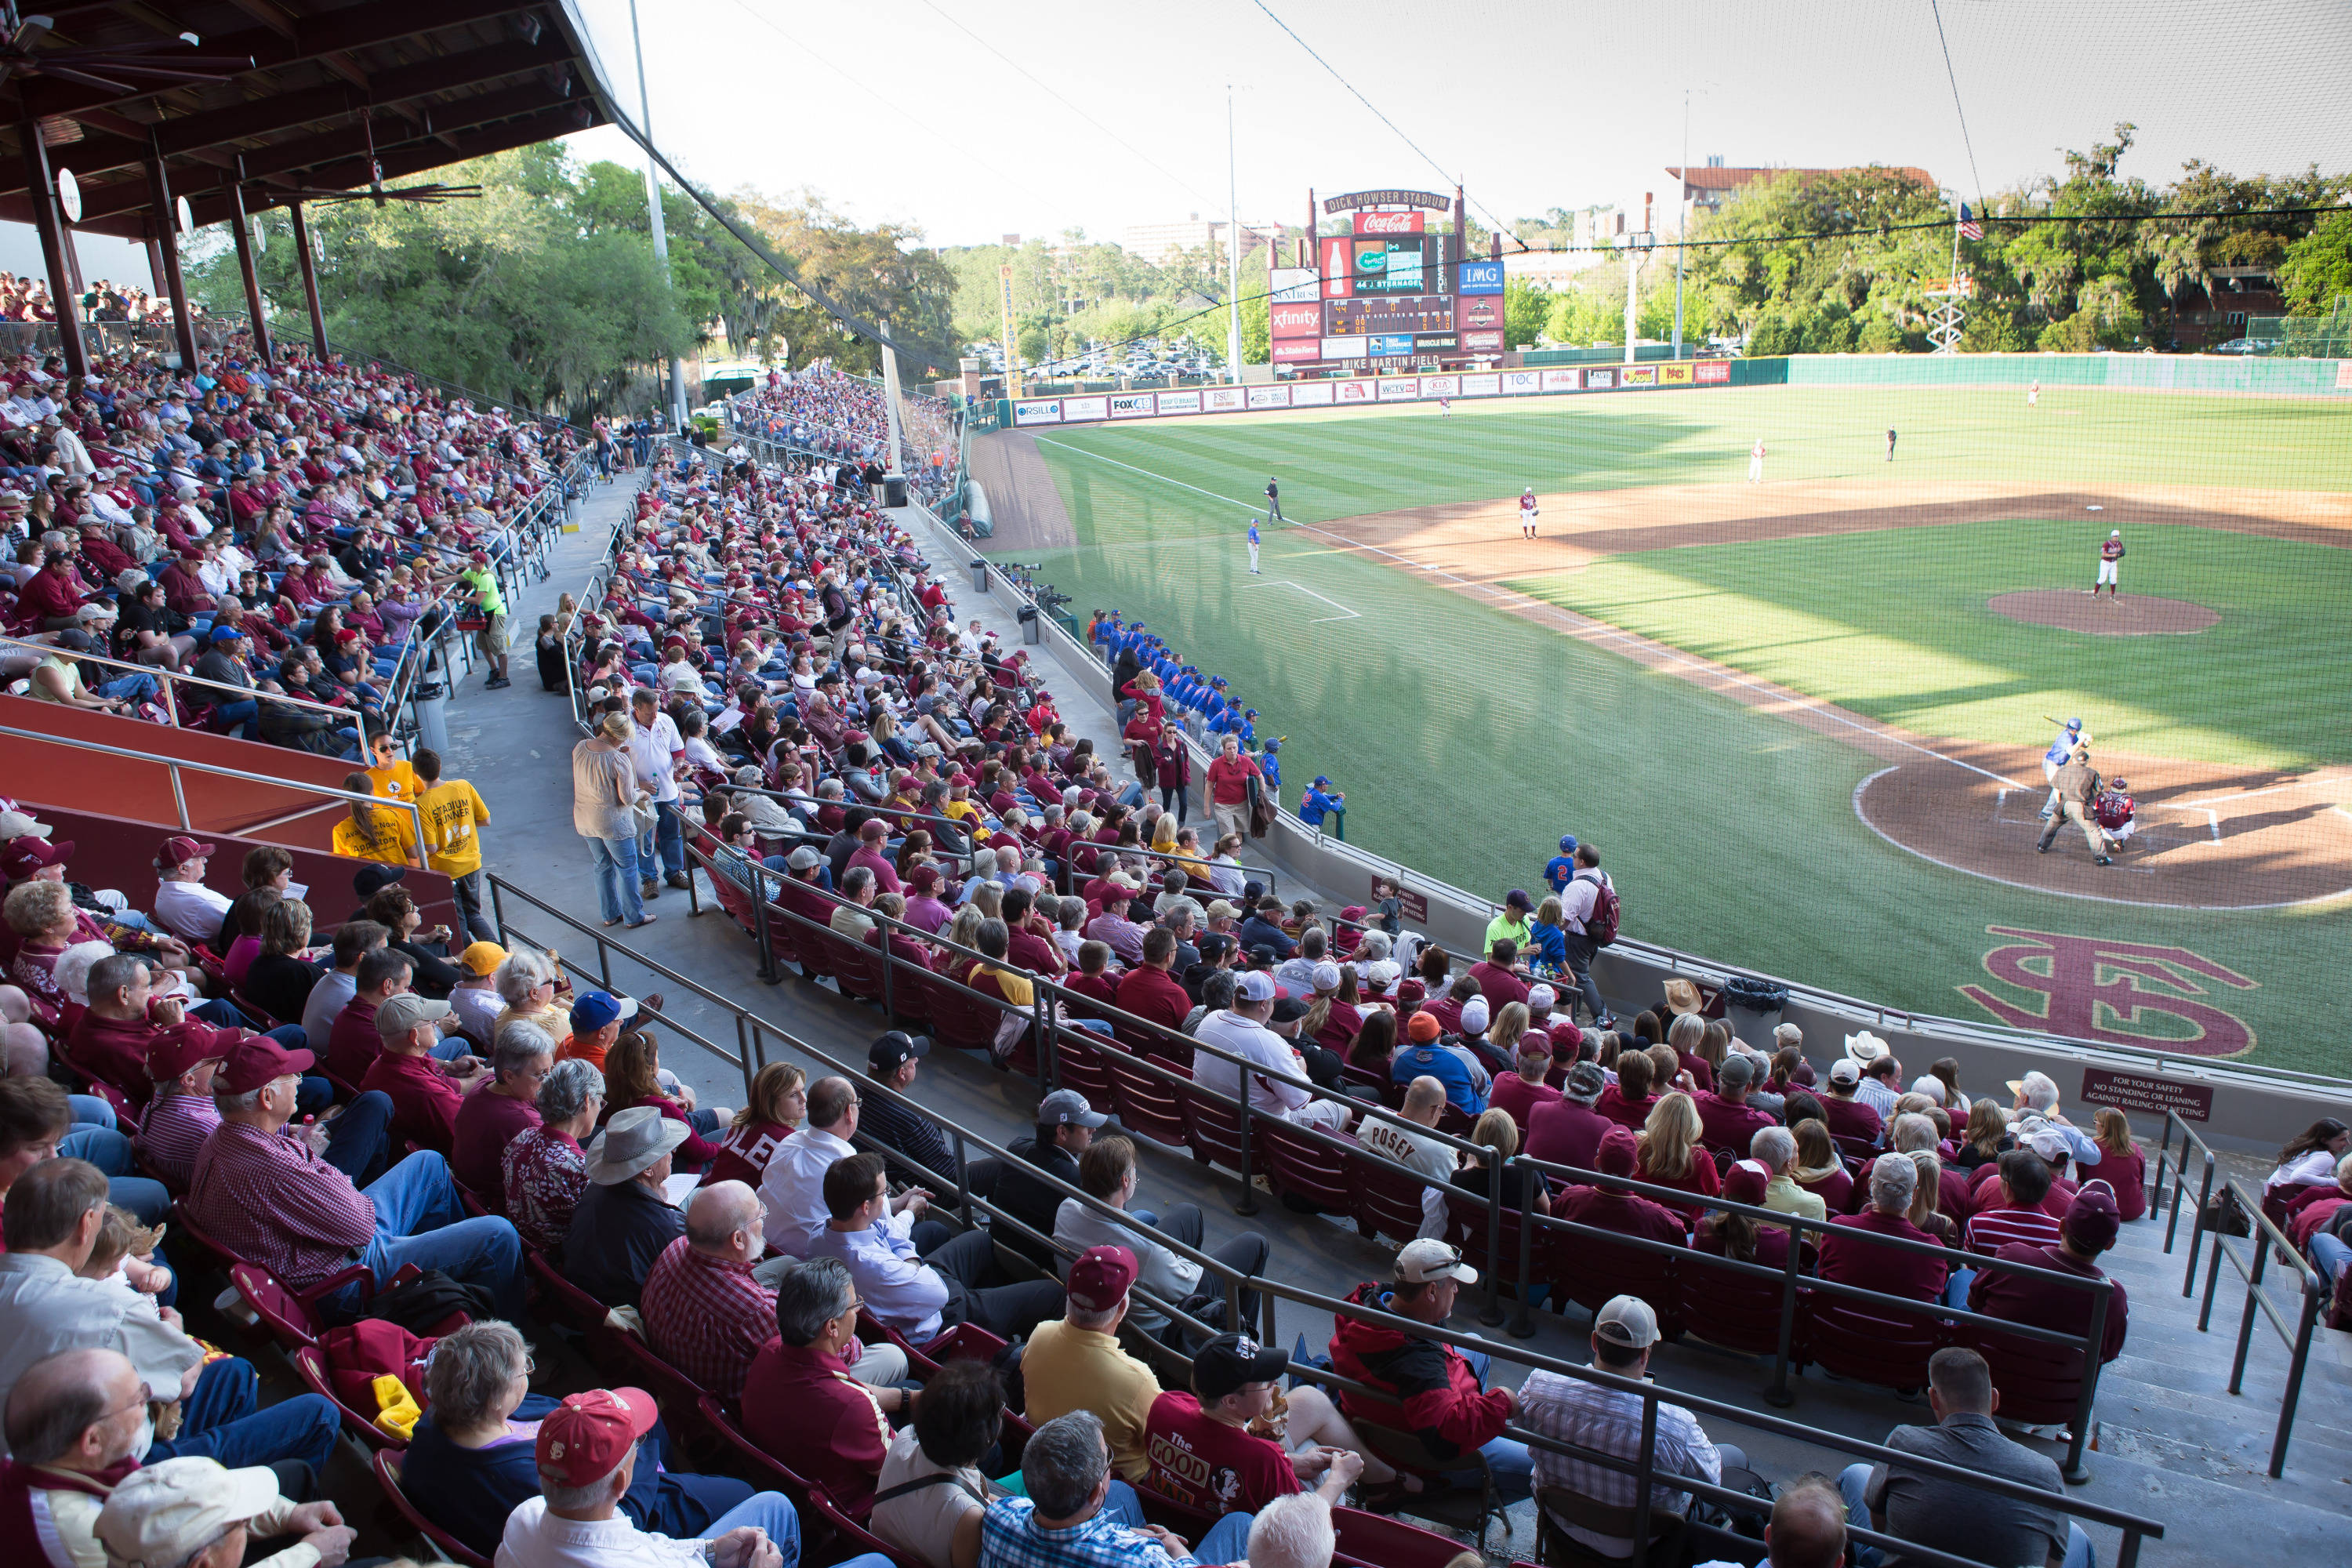 Over 6000 fans gathered for the Tuesday night match up with the Gators.